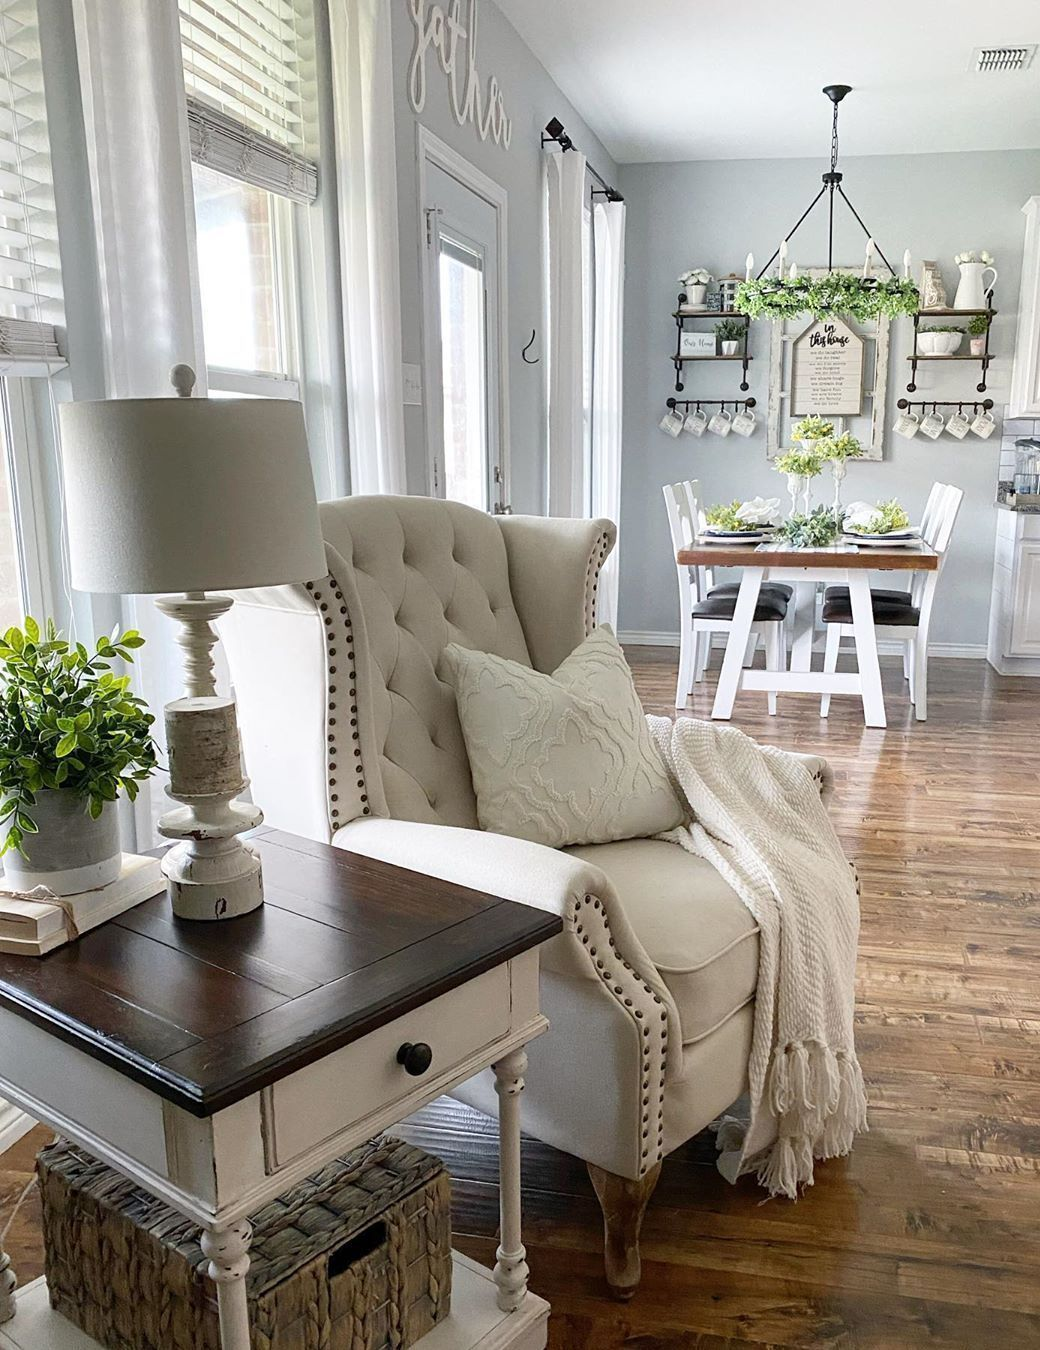 21 Cozy Farmhouse Accent Chairs For Relaxing In 2020 Farmhouse Dining Room Farmhouse Accent Chair Living Room Hacks #relaxing #chair #for #living #room